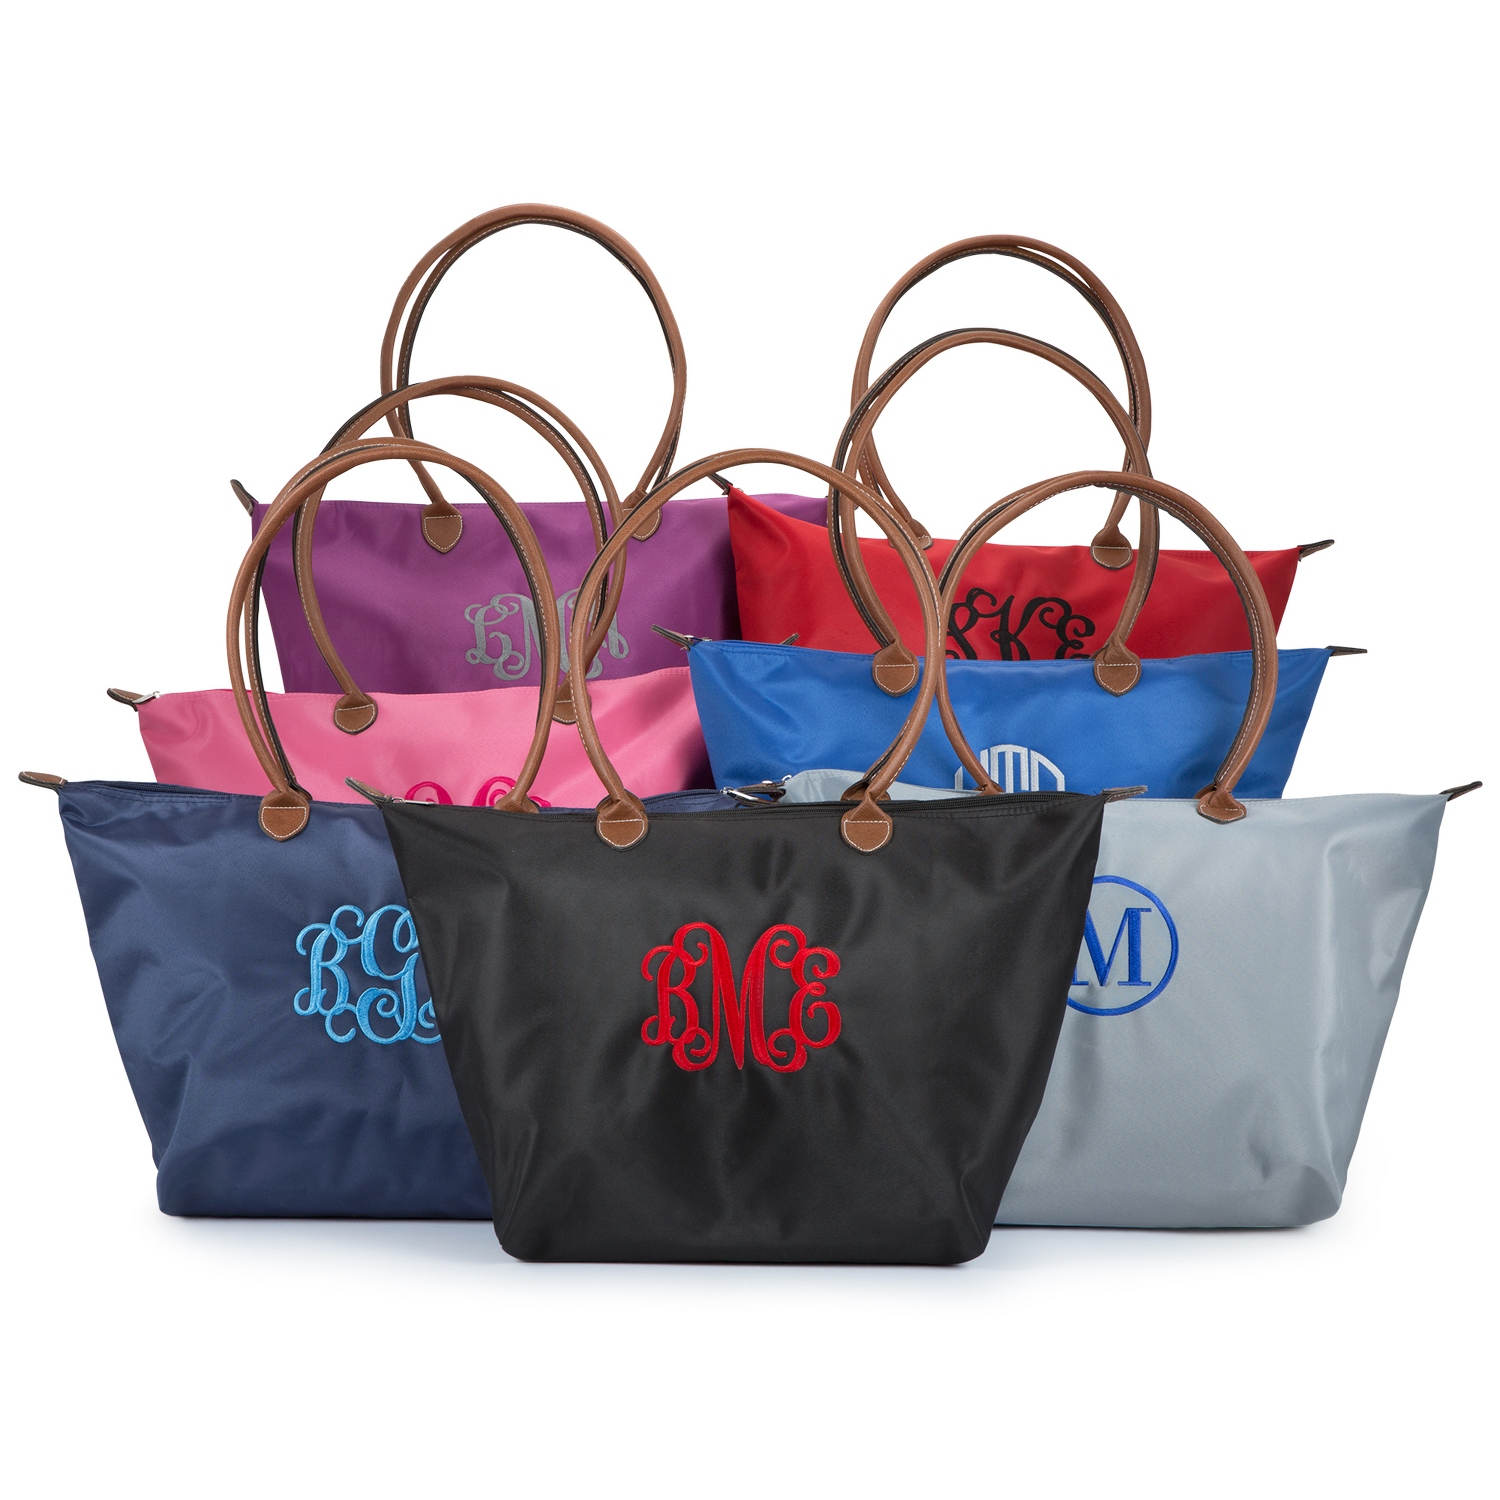 Essential Tote Bags